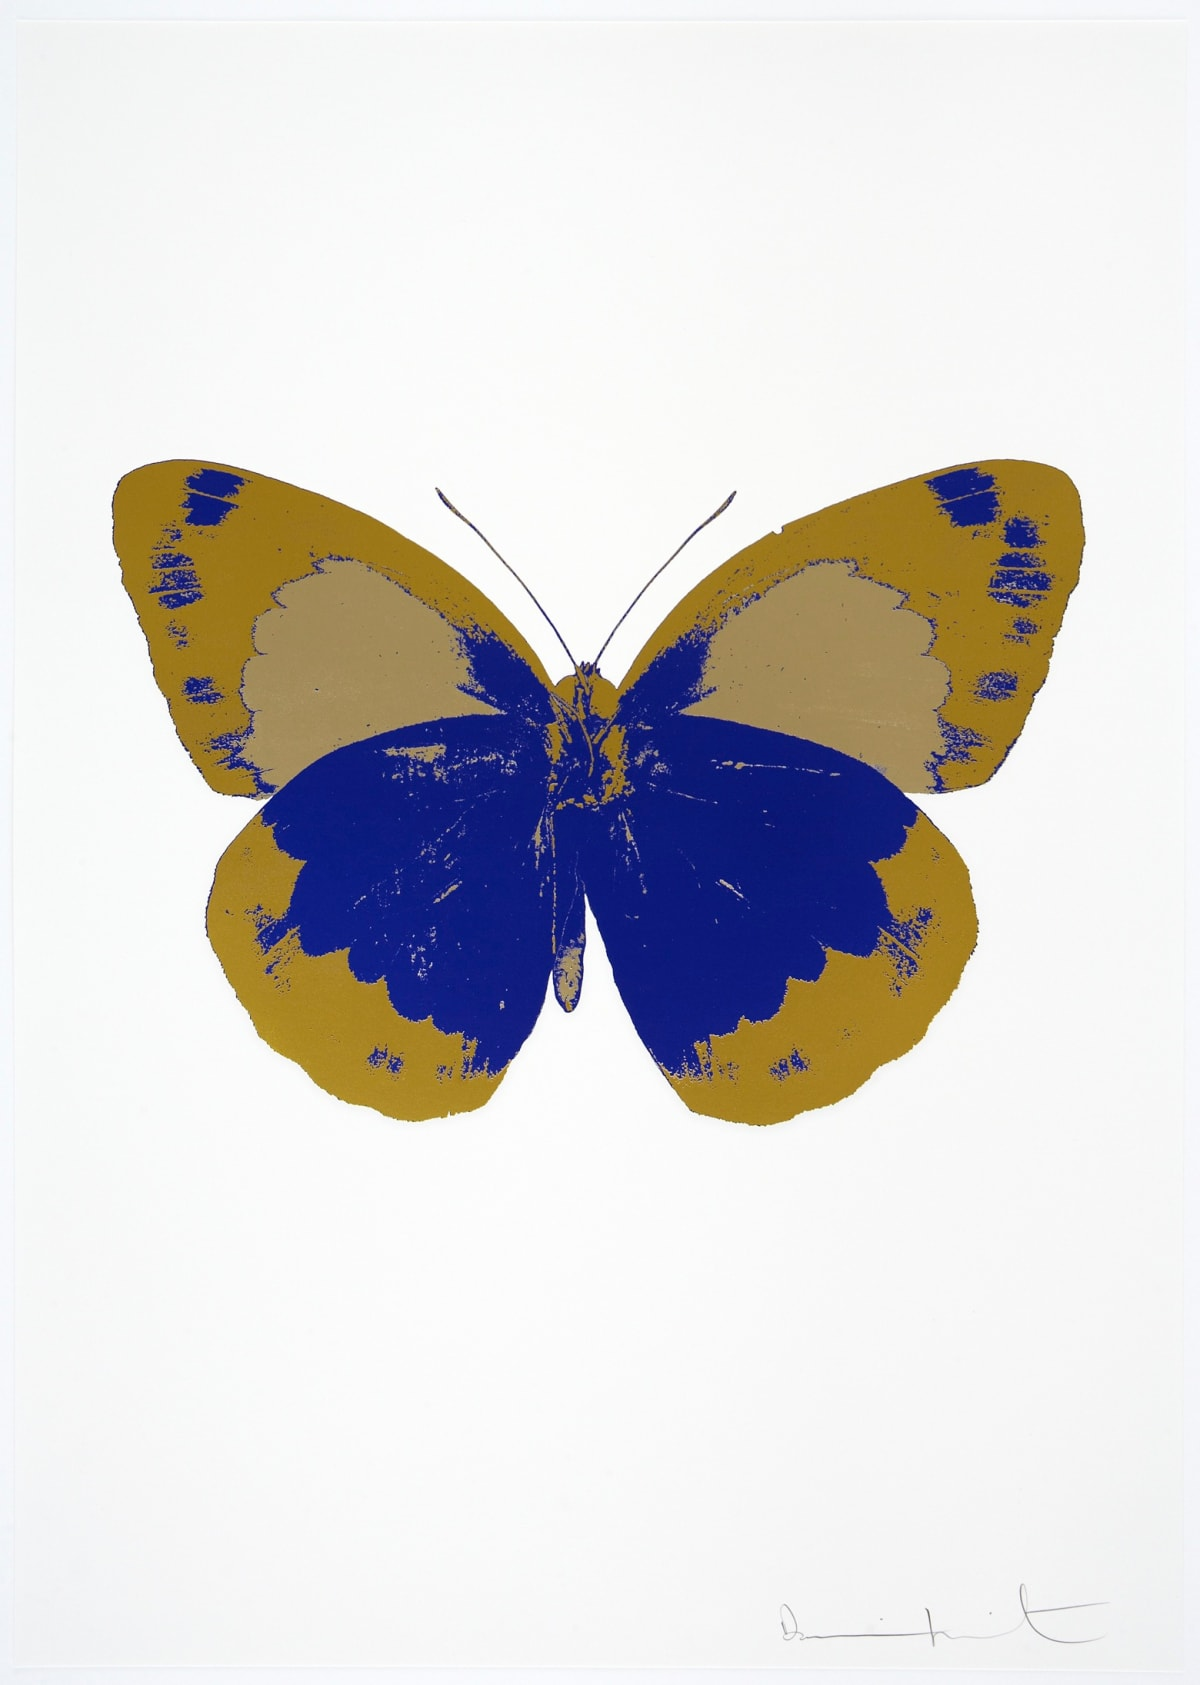 Damien Hirst The Souls II - Westminster Blue/Oriental Gold/Cool Gold, 2010 3 colour foil block on 300gsm Arches 88 archival paper. Signed and numbered. Published by Paul Stolper and Other Criteria 72 x 51cm OC7860 / 658-43 Edition of 15